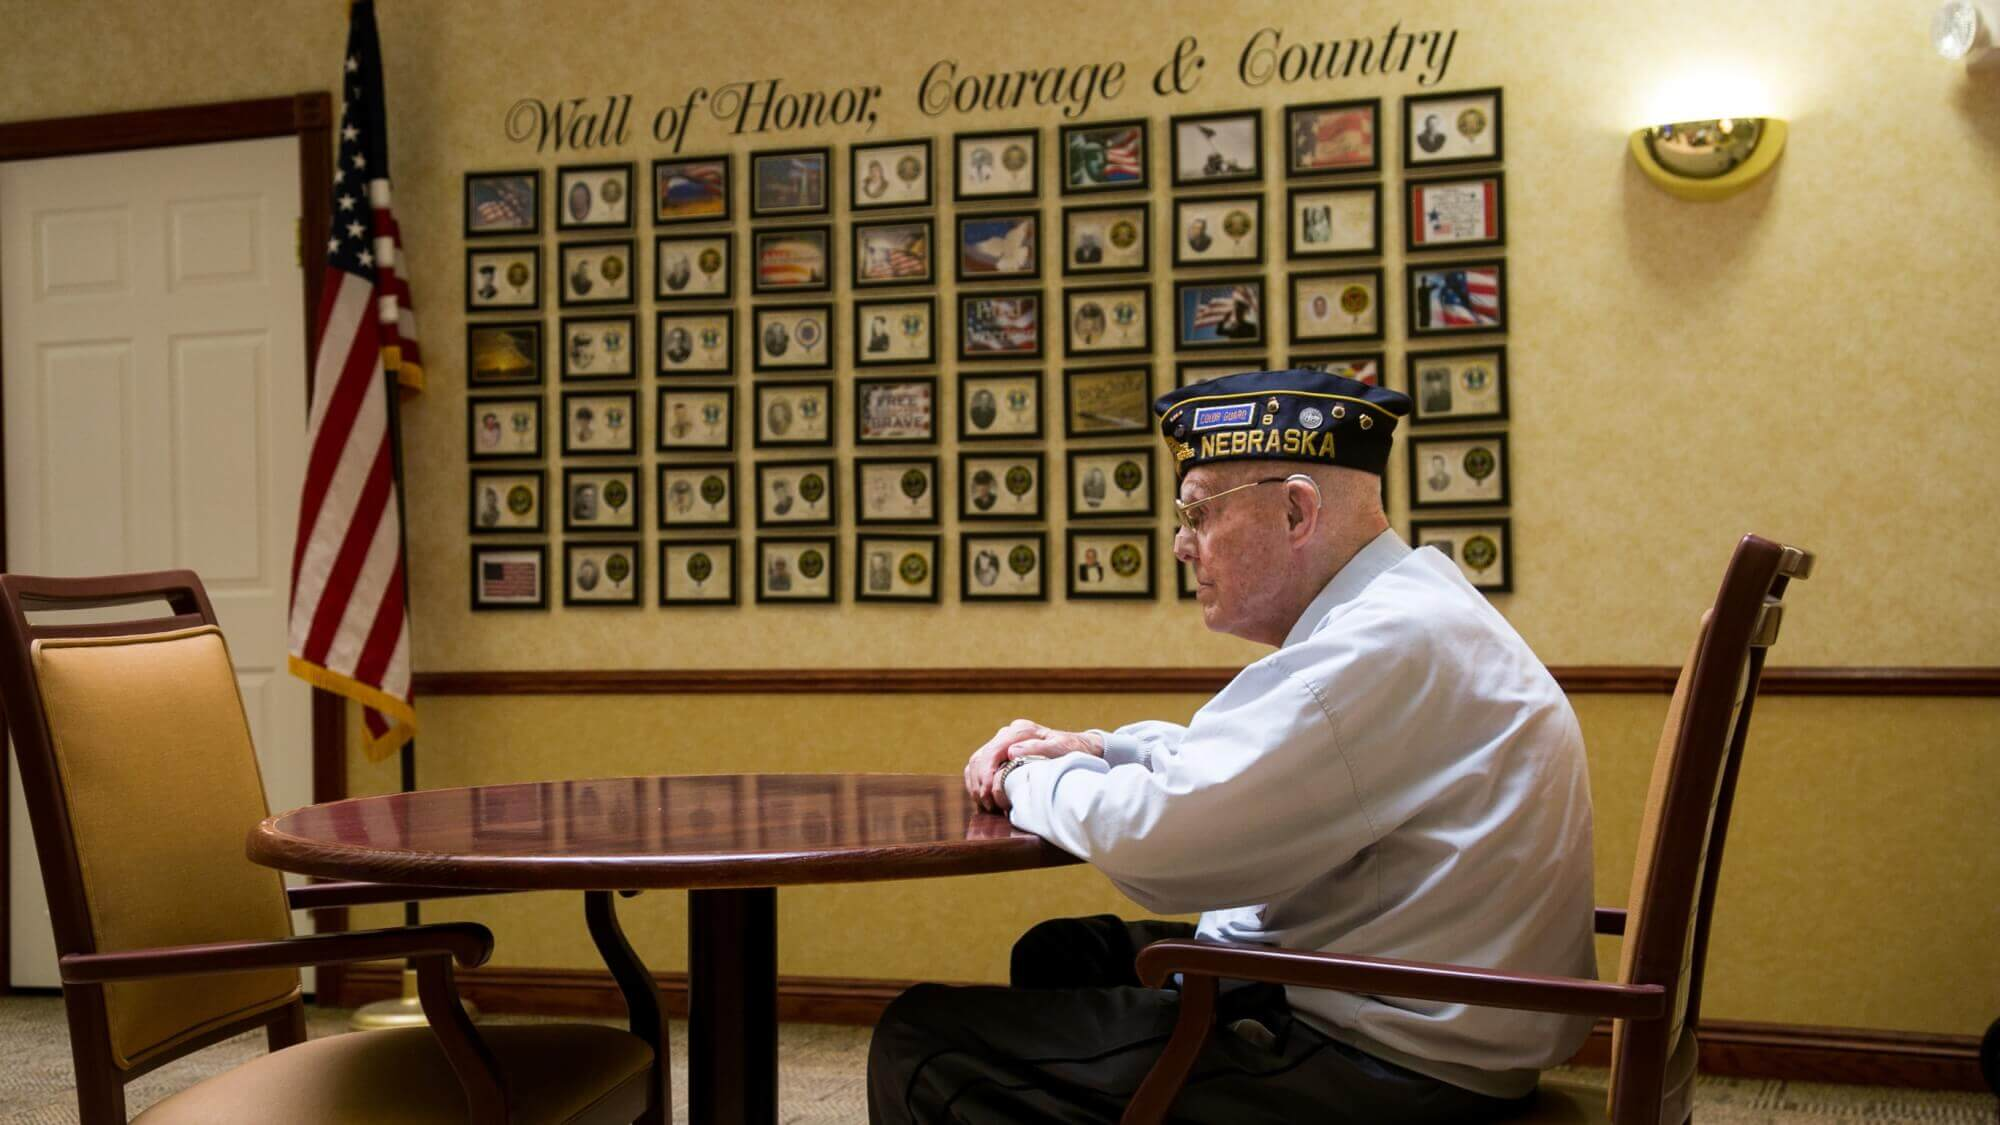 Senior veteran sitting at a table looking in the distance, in front, of the Wall of Honor, Courage and Country.